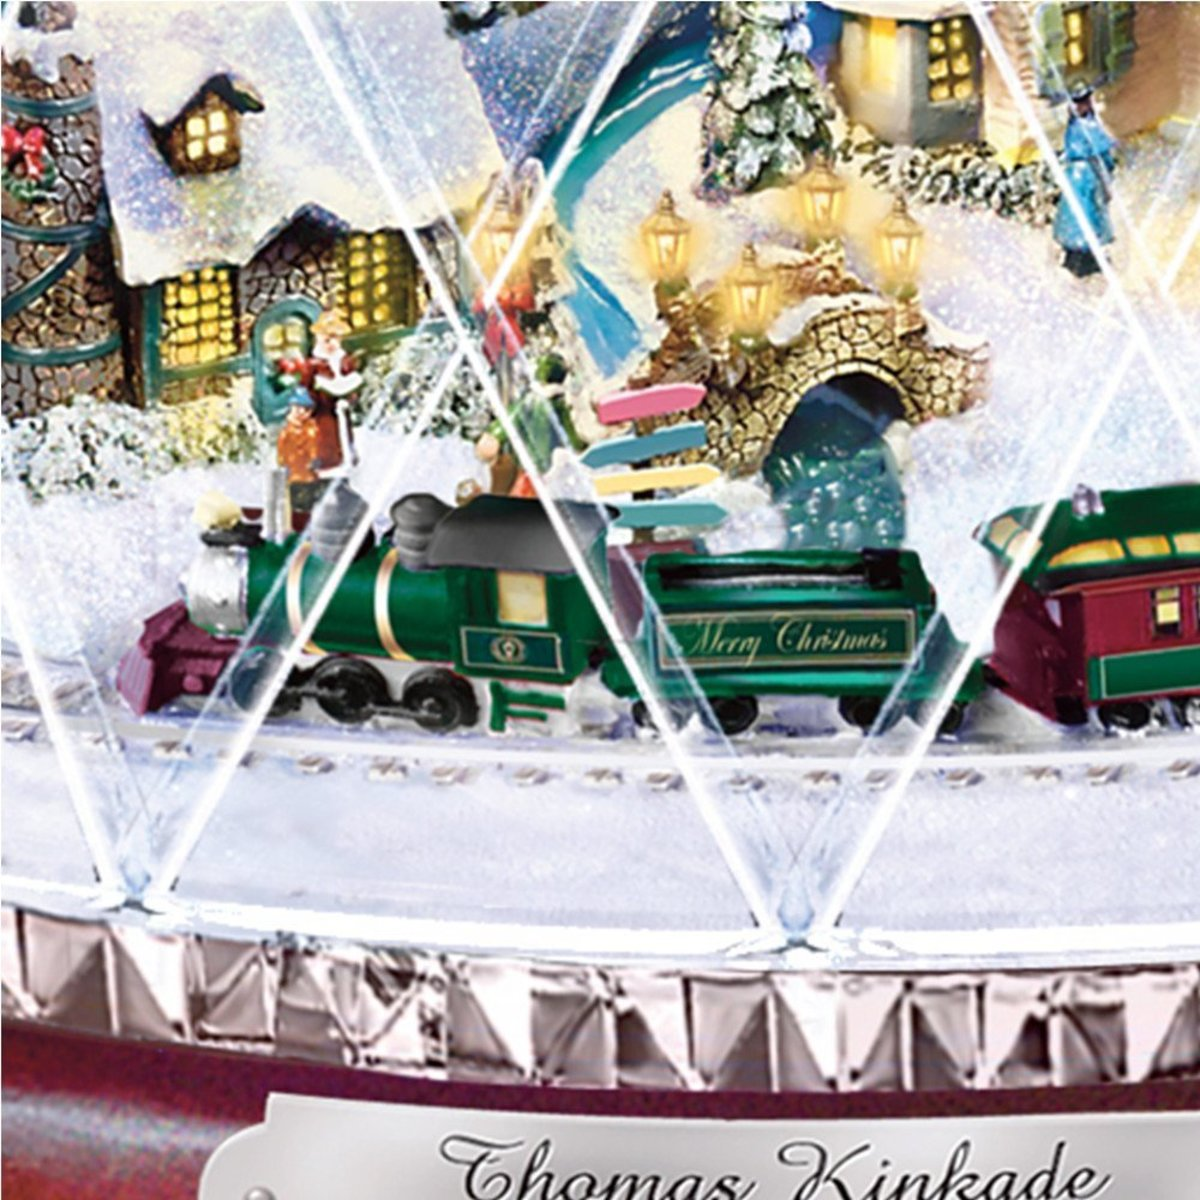 Miniature animated train circles the Christmas village.